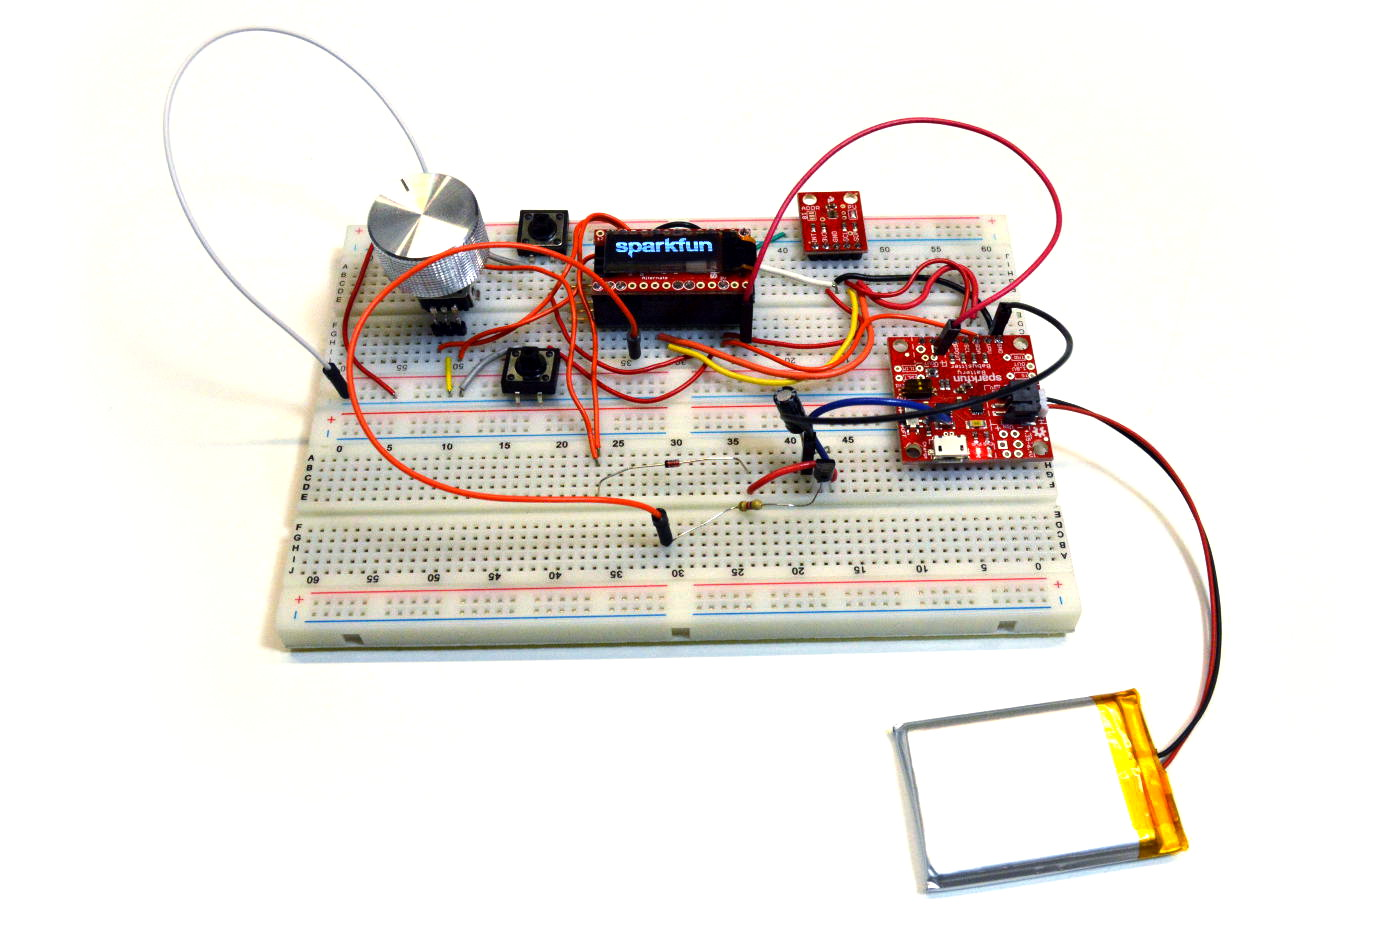 Enginursday Battery Management News Sparkfun Electronics Working Forum Circuits Projects And Microcontrollers Before Stuffing The Project In Box Entire Was Developed On A Breadboard This Allows Question To Be Tested